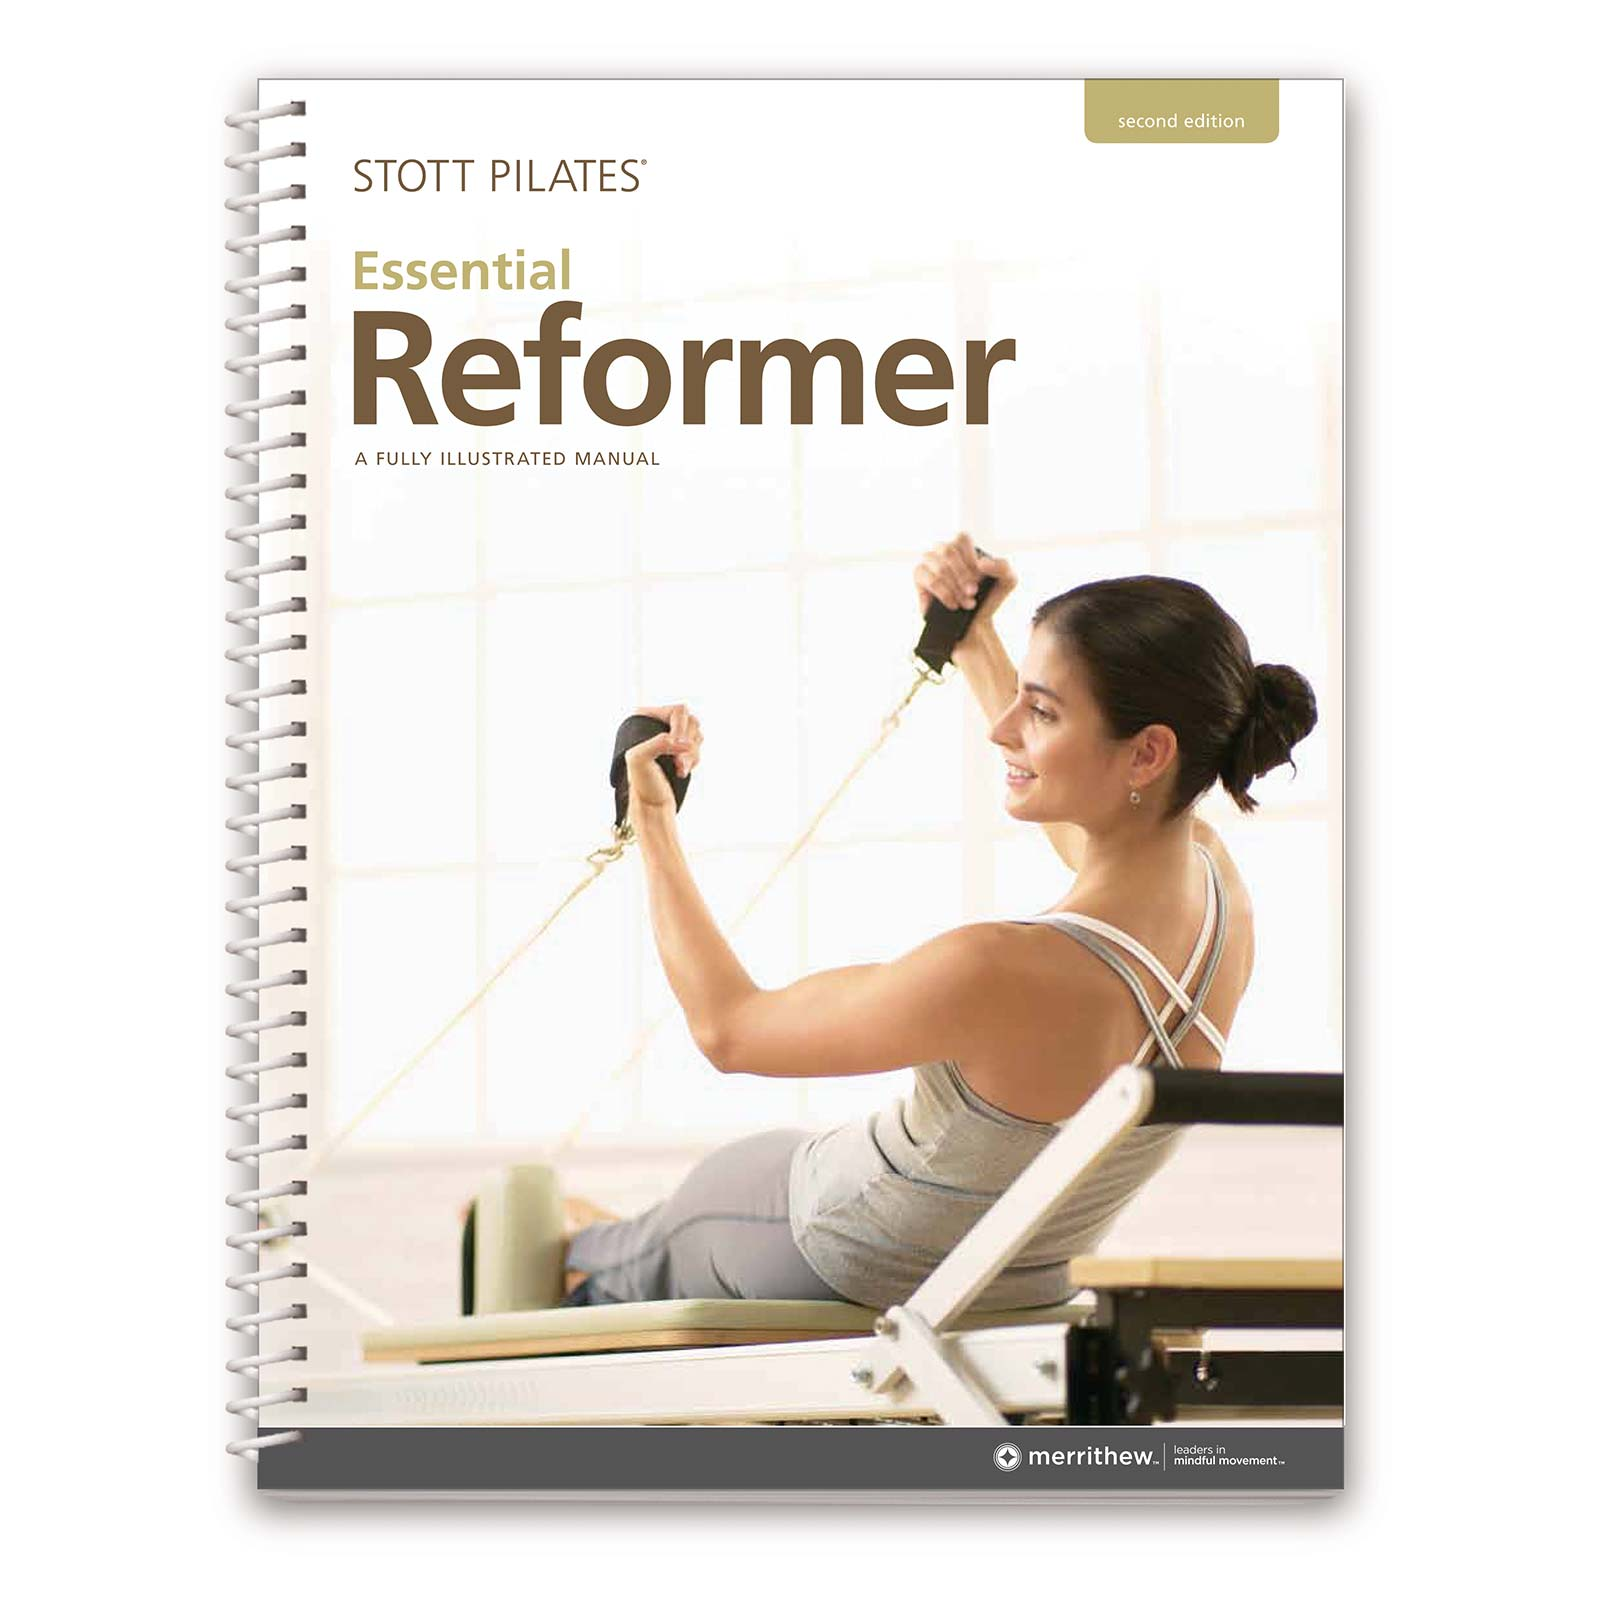 Shop reformer education manuals merrithew manual essential reformer 2nd ed english fandeluxe Images